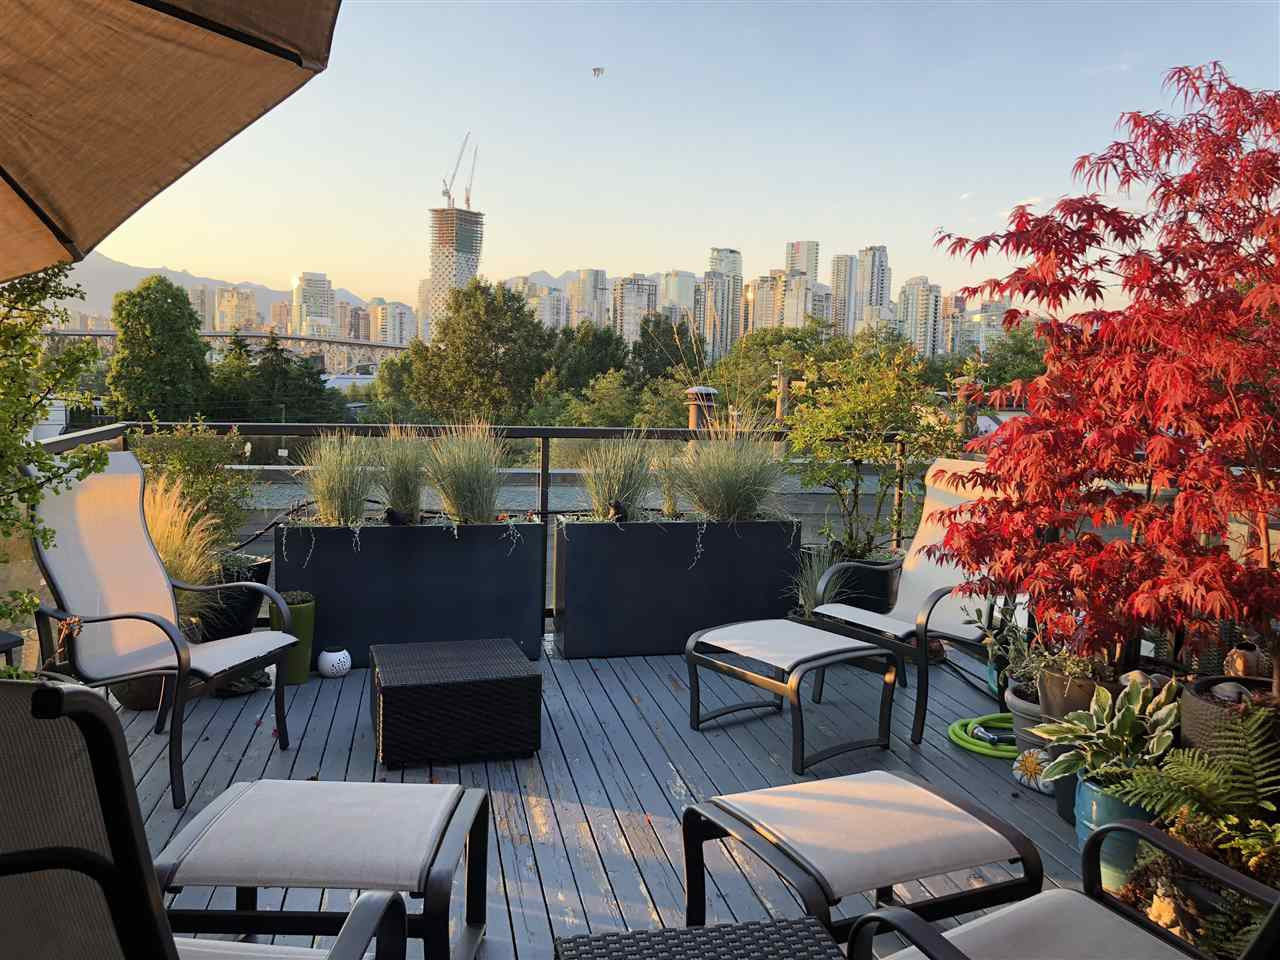 """Main Photo: 301 1220 W 6TH Avenue in Vancouver: Fairview VW Condo for sale in """"ALDER BAY PLACE"""" (Vancouver West)  : MLS®# R2481077"""